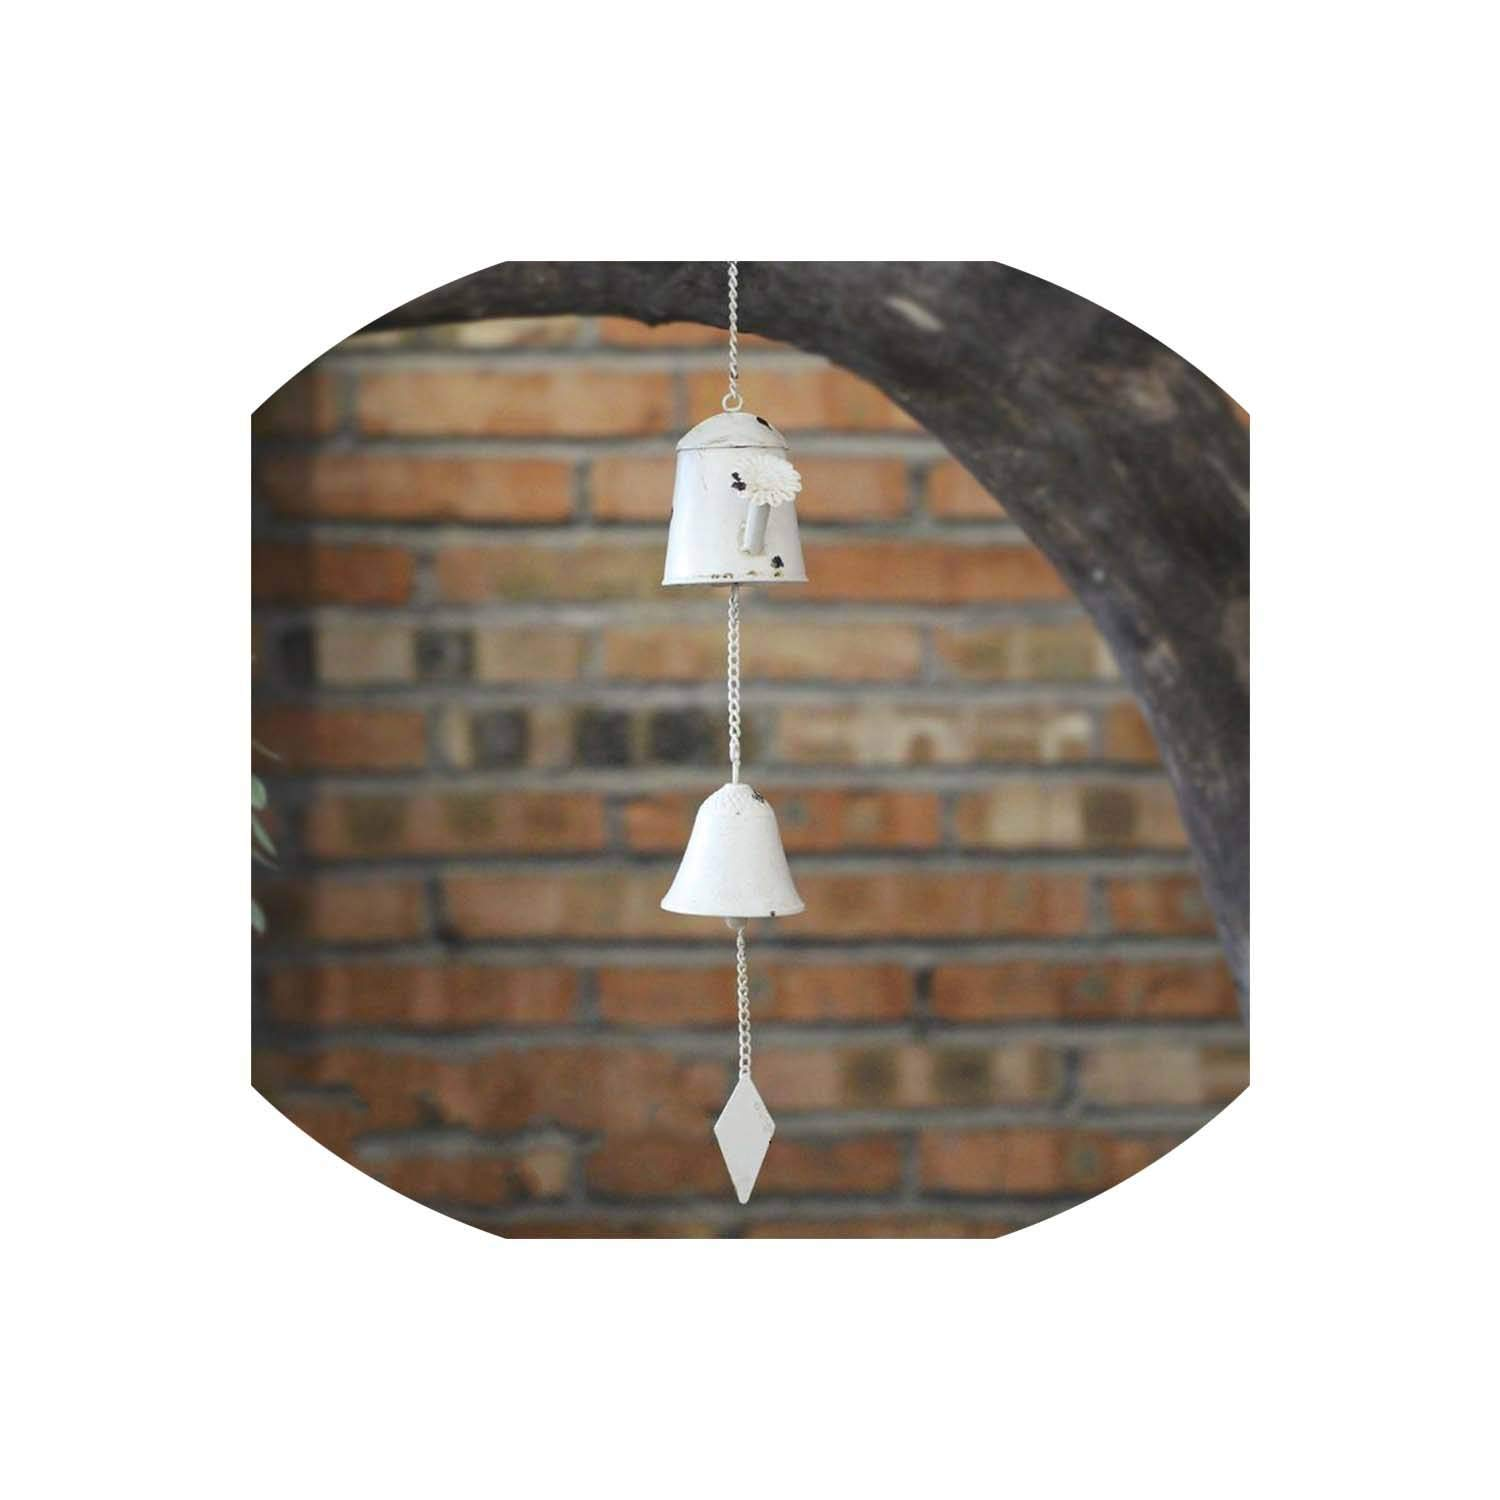 Metal Iron Bells Metal Pastoral Home Furnishing Door Decoration Creative American Country Colorful Wind Chime Gift Bell,White